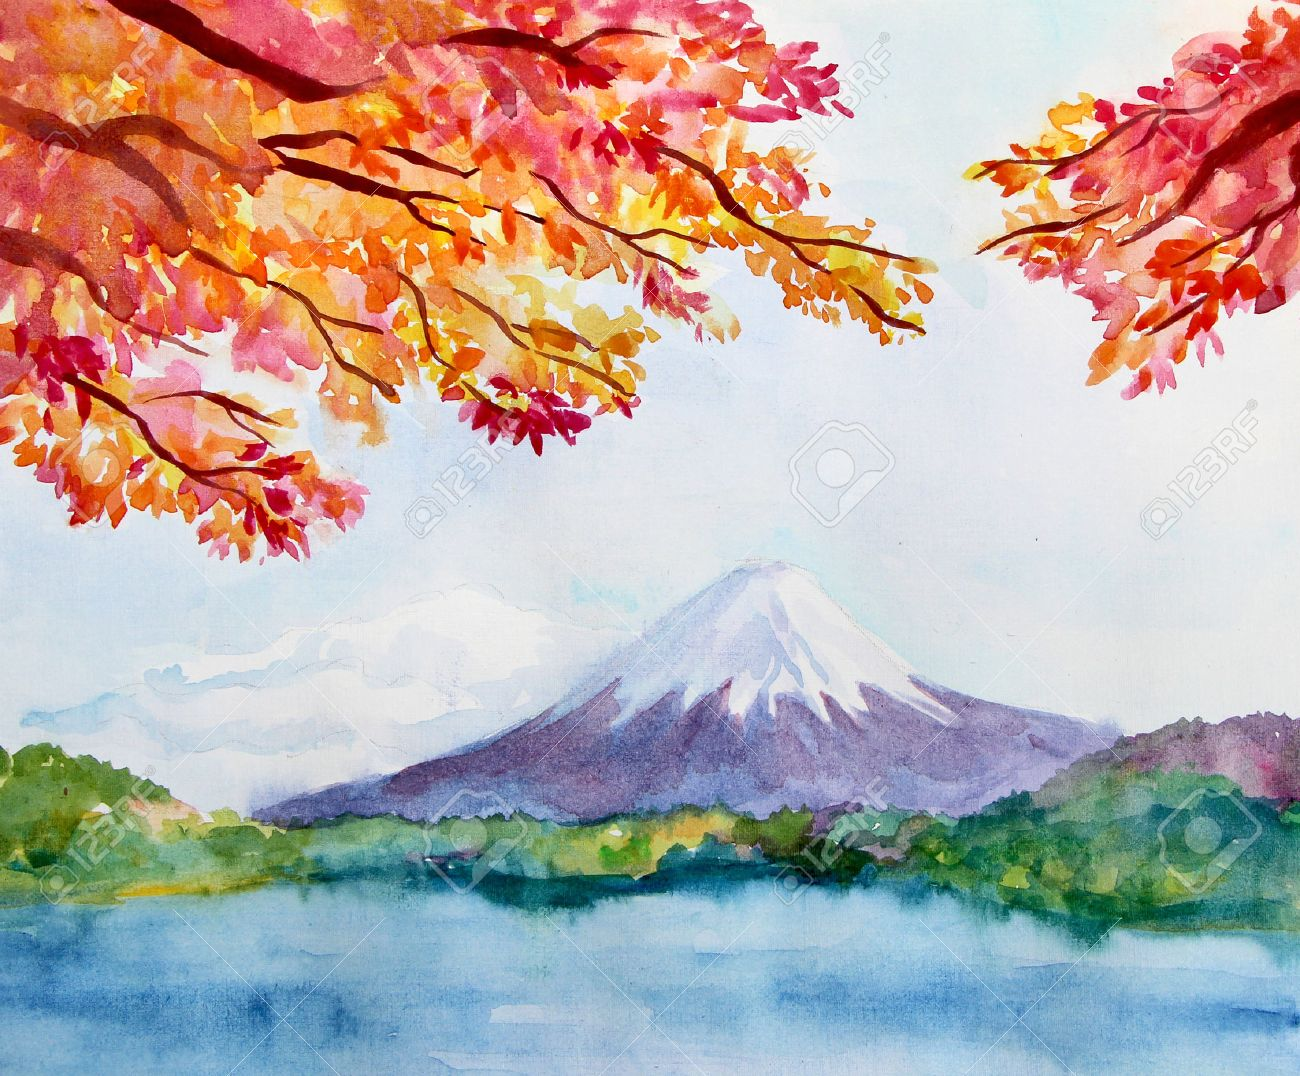 watercolor landscape with mountain fujiyama and maple tree autumn